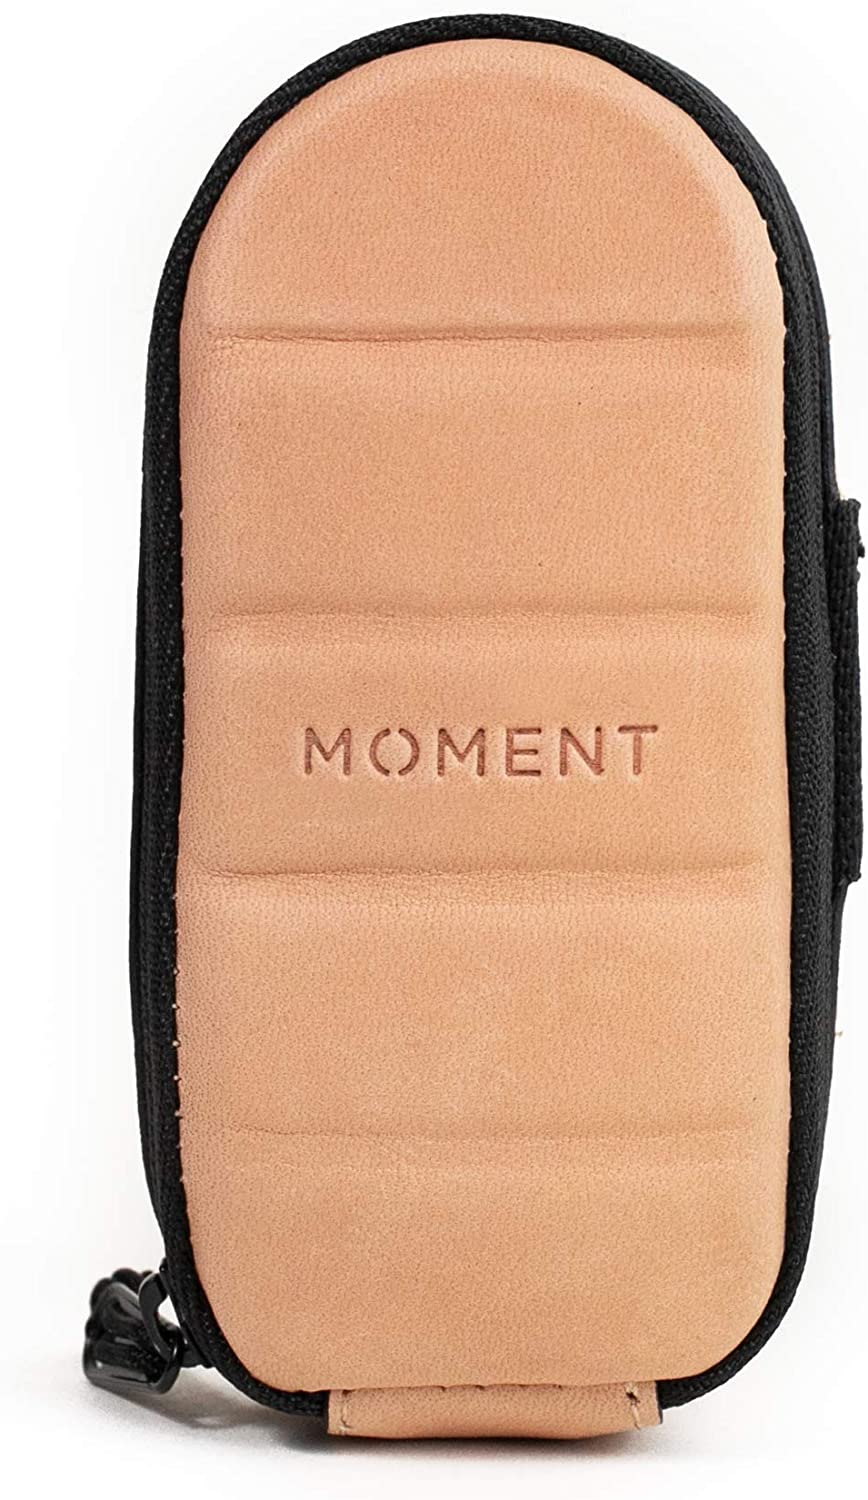 Leather Moment Dual Mobile Lens Pouch